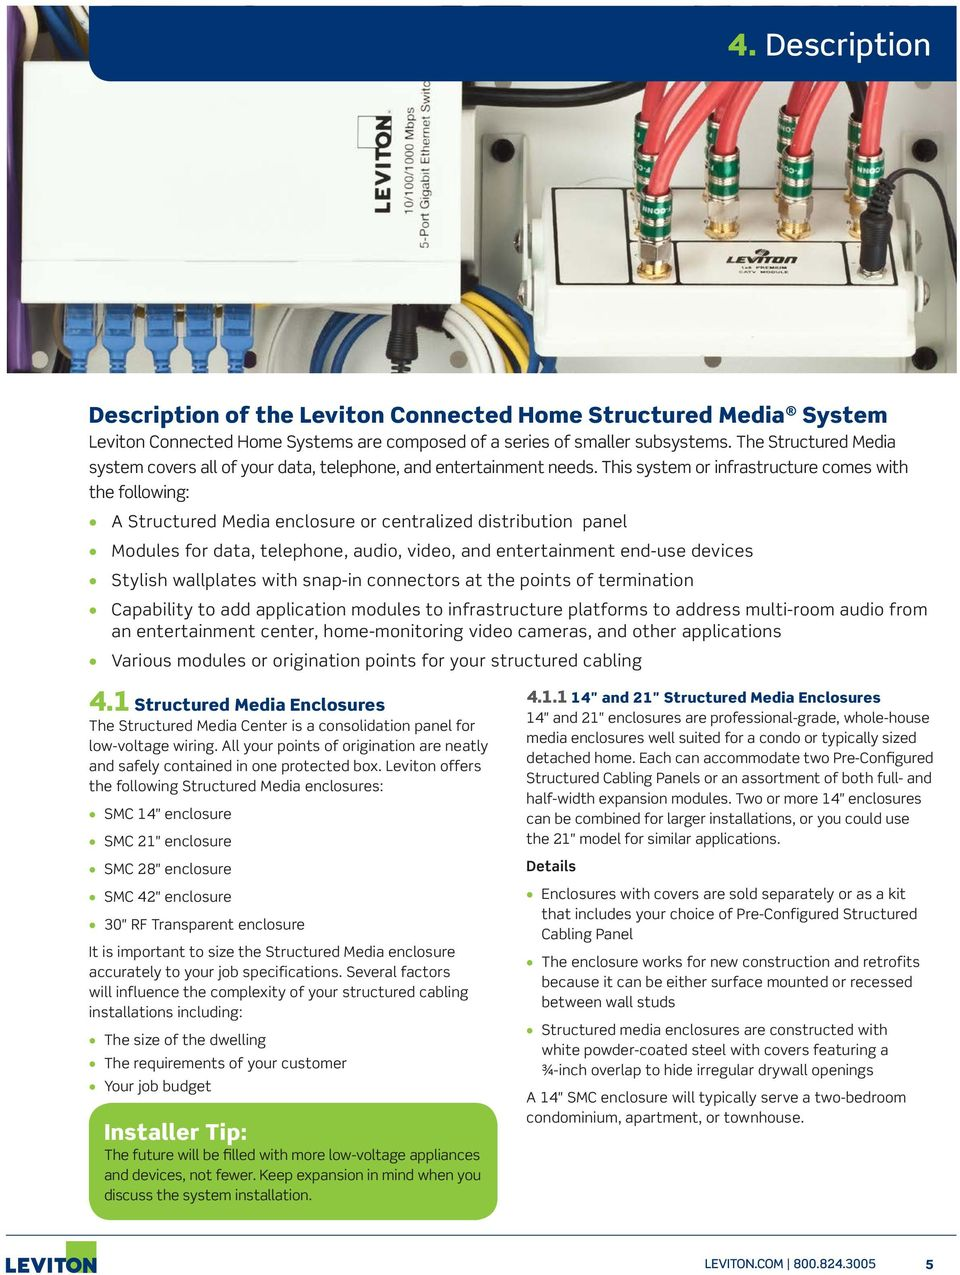 Basic Residential Installation Guide Pdf Home Structured Wiring Voice Distribution Video This System Or Infrastructure Comes With The Following A Media Enclosure Centralized